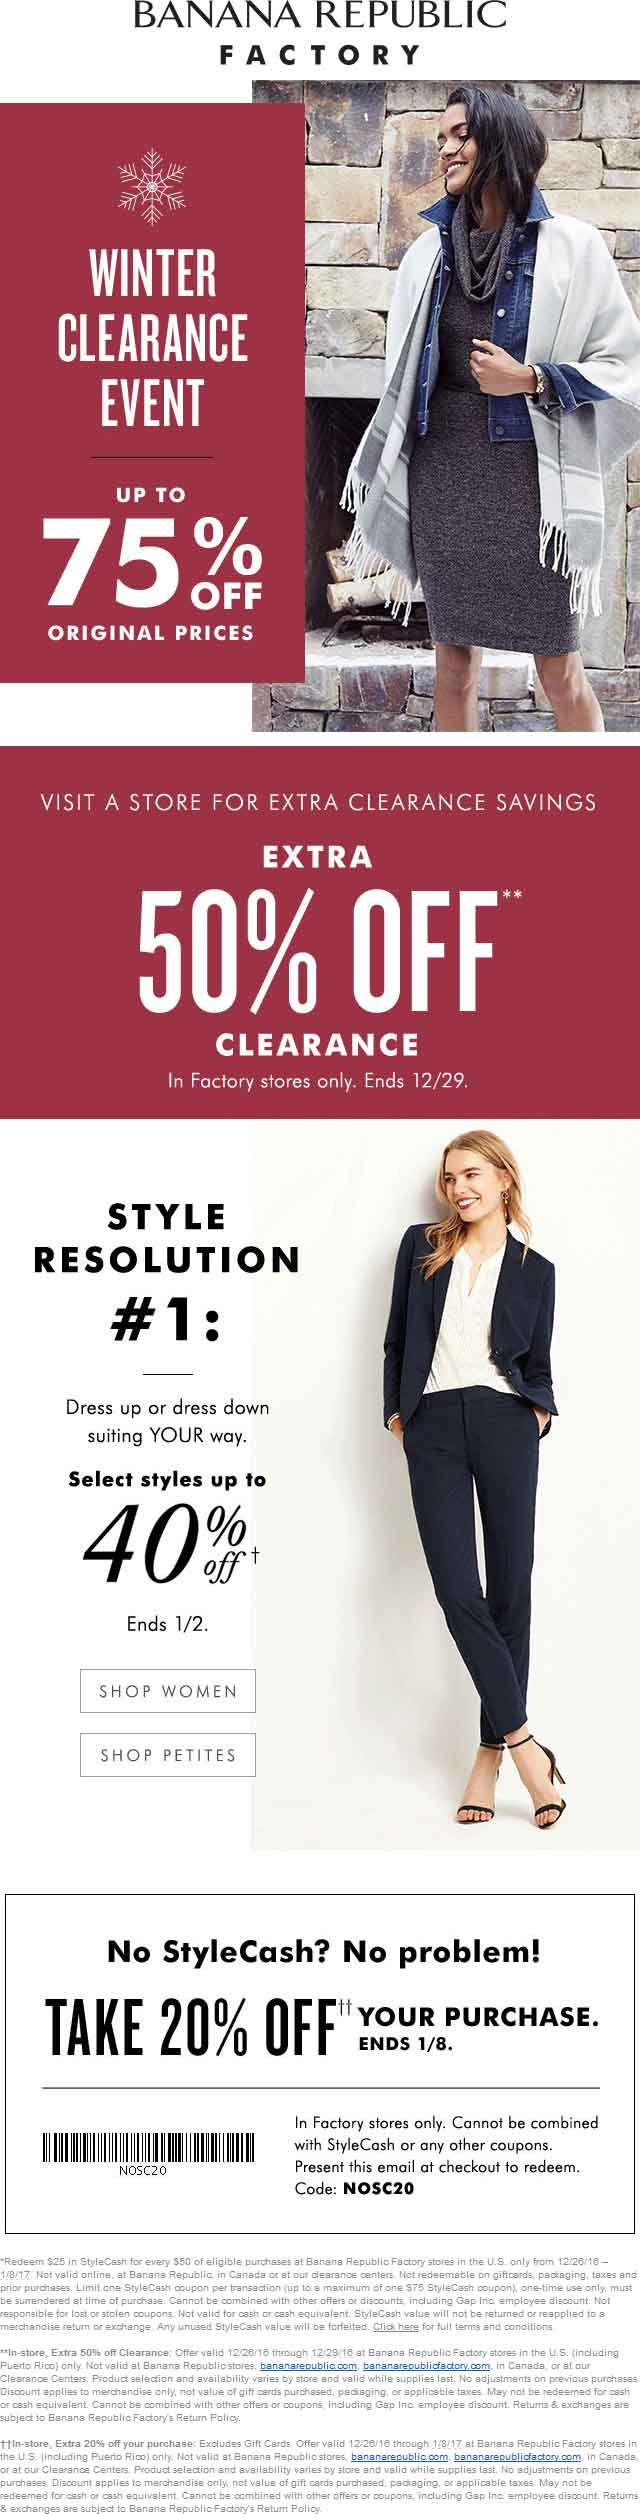 BananaRepublicFactory.com Promo Coupon 20-50% off at Banana Republic Factory